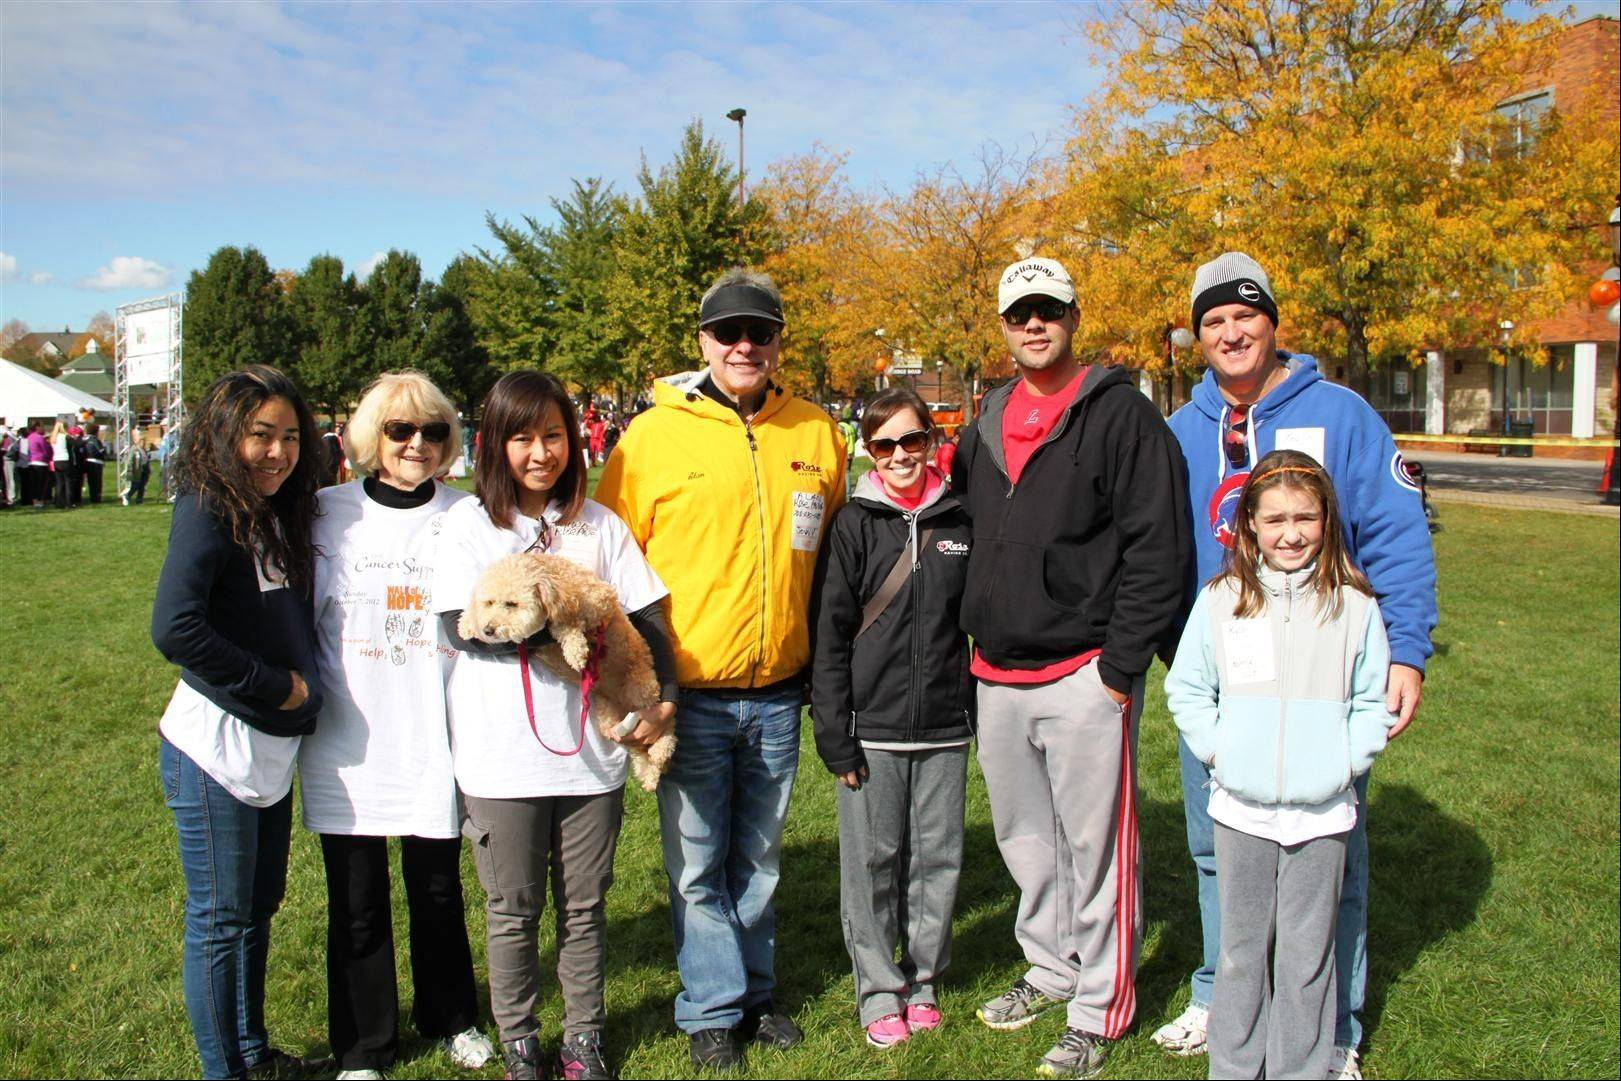 Natkritta Oil Suracupt, from left, Fran Rose, Tiwa Borrisuth, Alan Rose, Candace Johnson, Eric Johnson, Kevin Tiernan, Ryan Tiernan (Kevin's daughter) participated in the Walk of Hope.